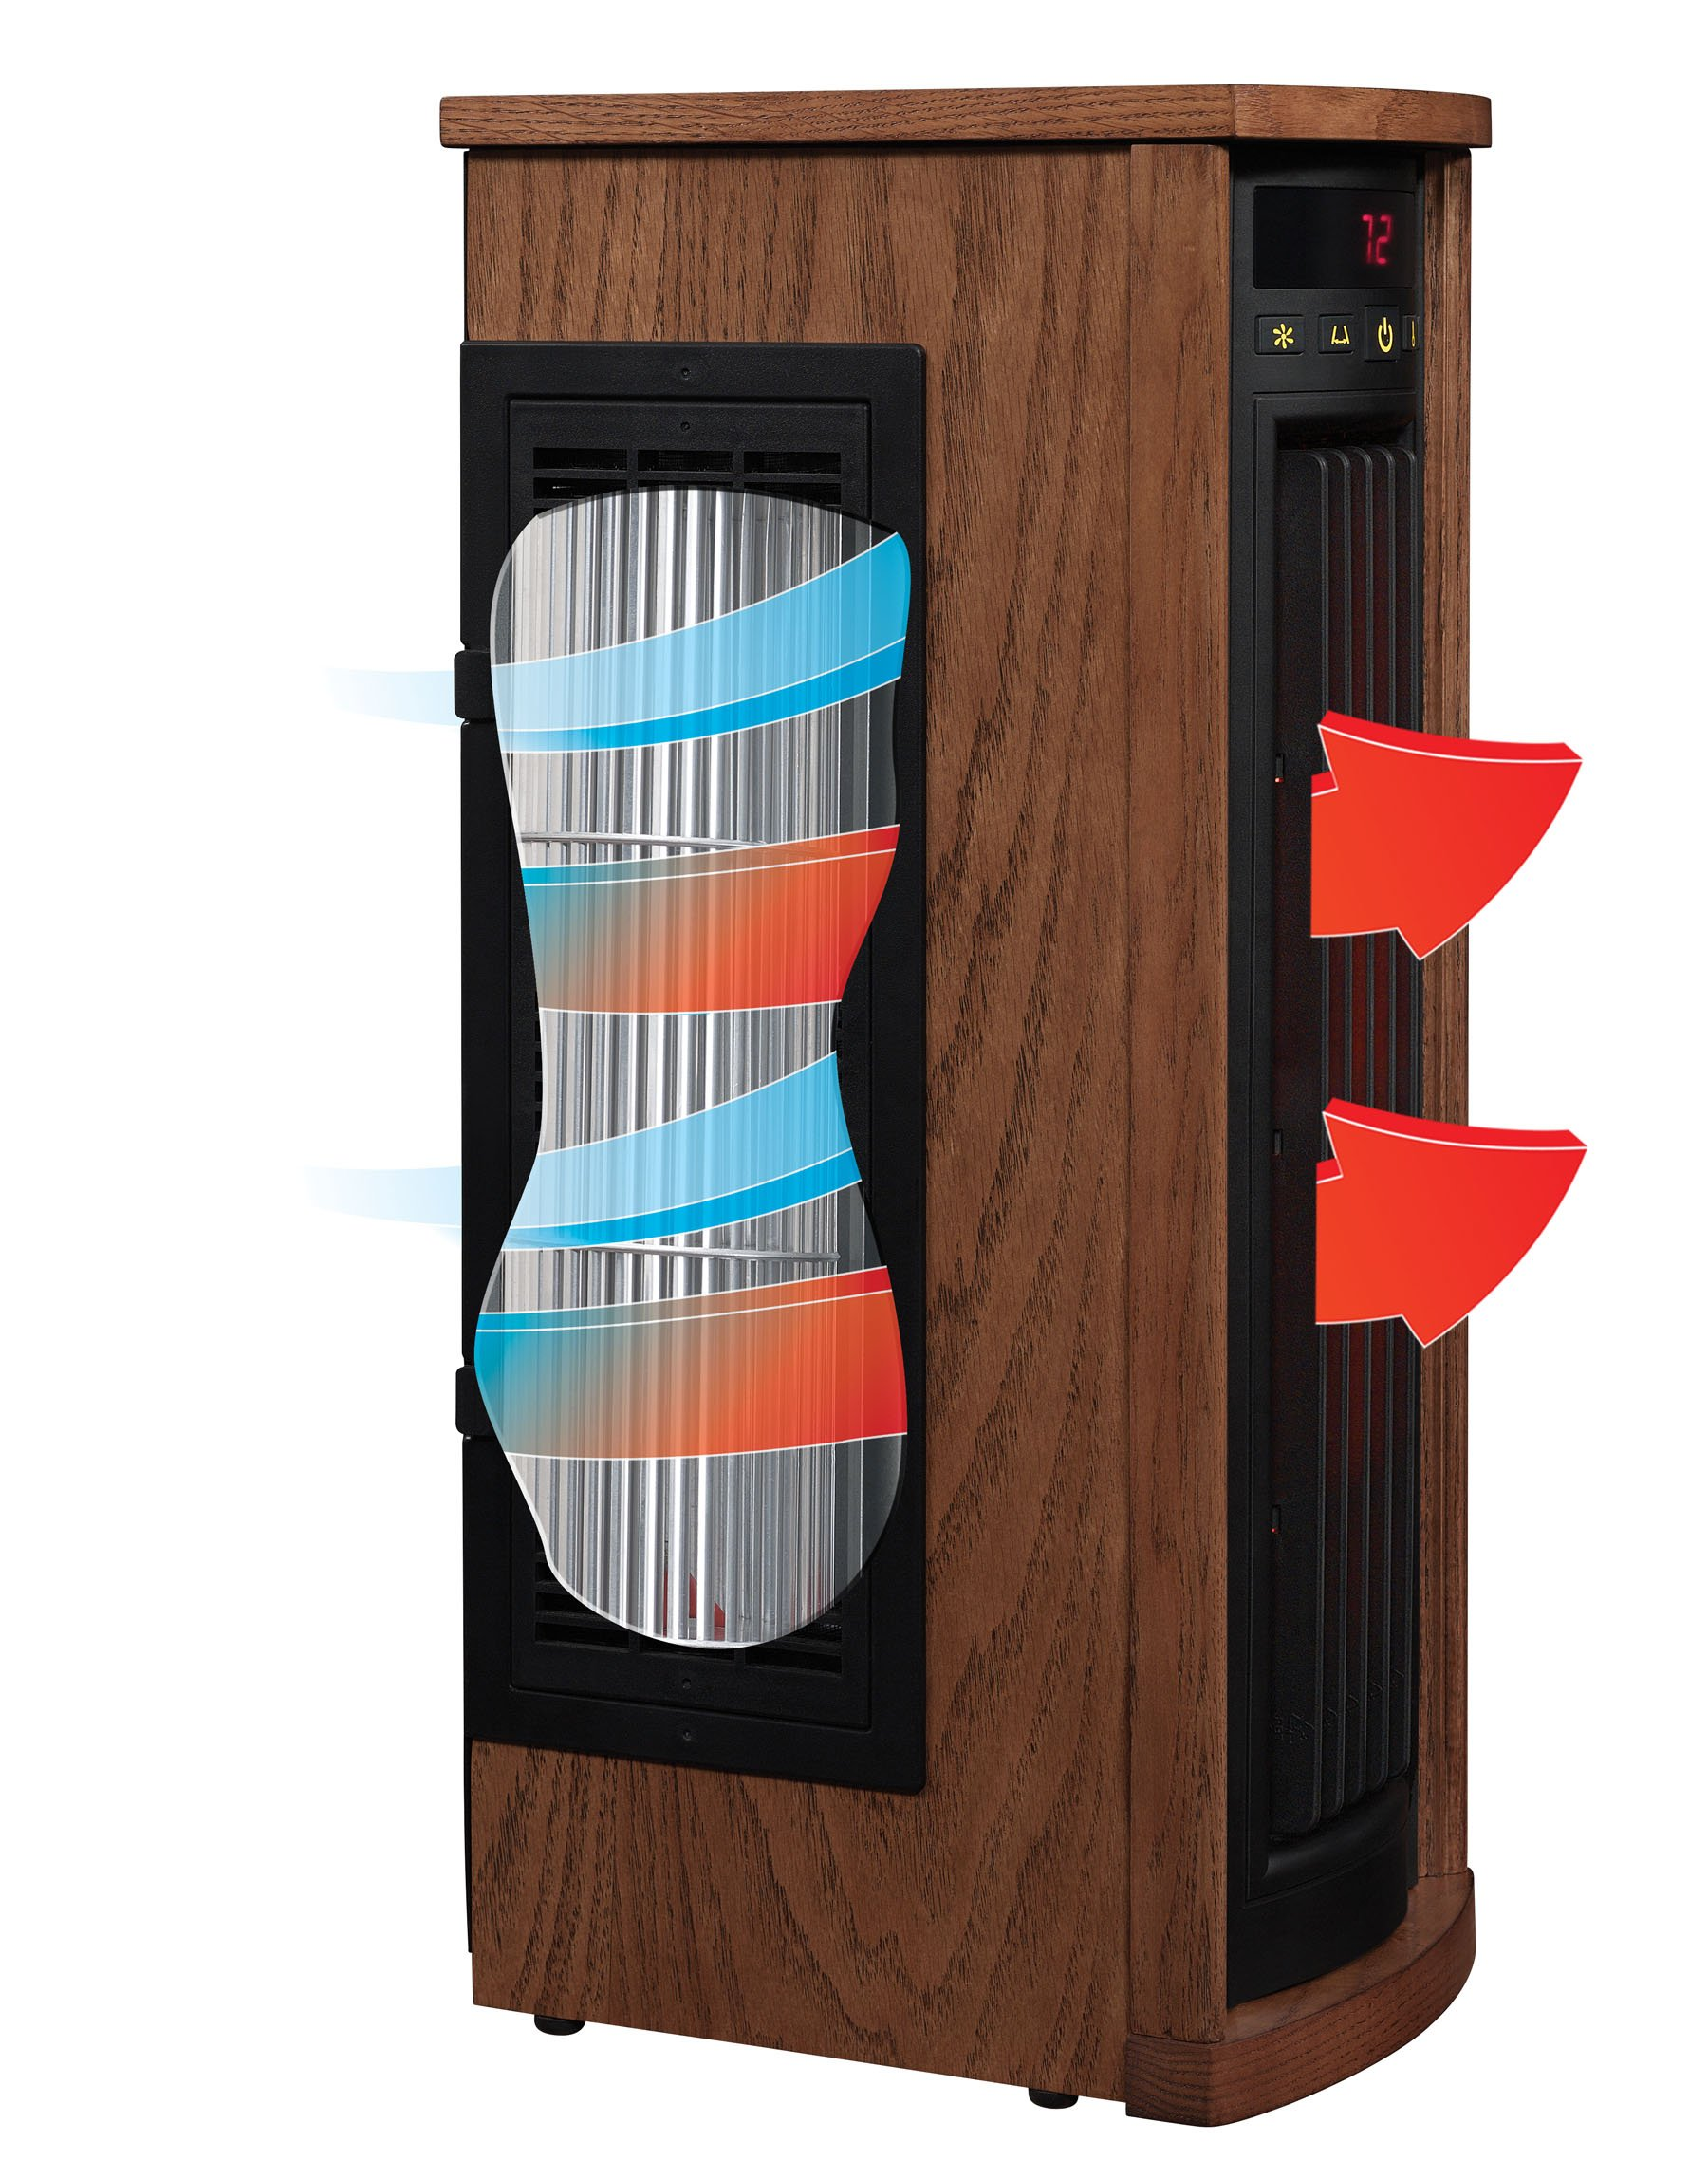 Duraflame 5HM8000-O142 Portable Electric Infrared Quartz Oscillating Tower Heater, Oak by Duraflame (Image #4)